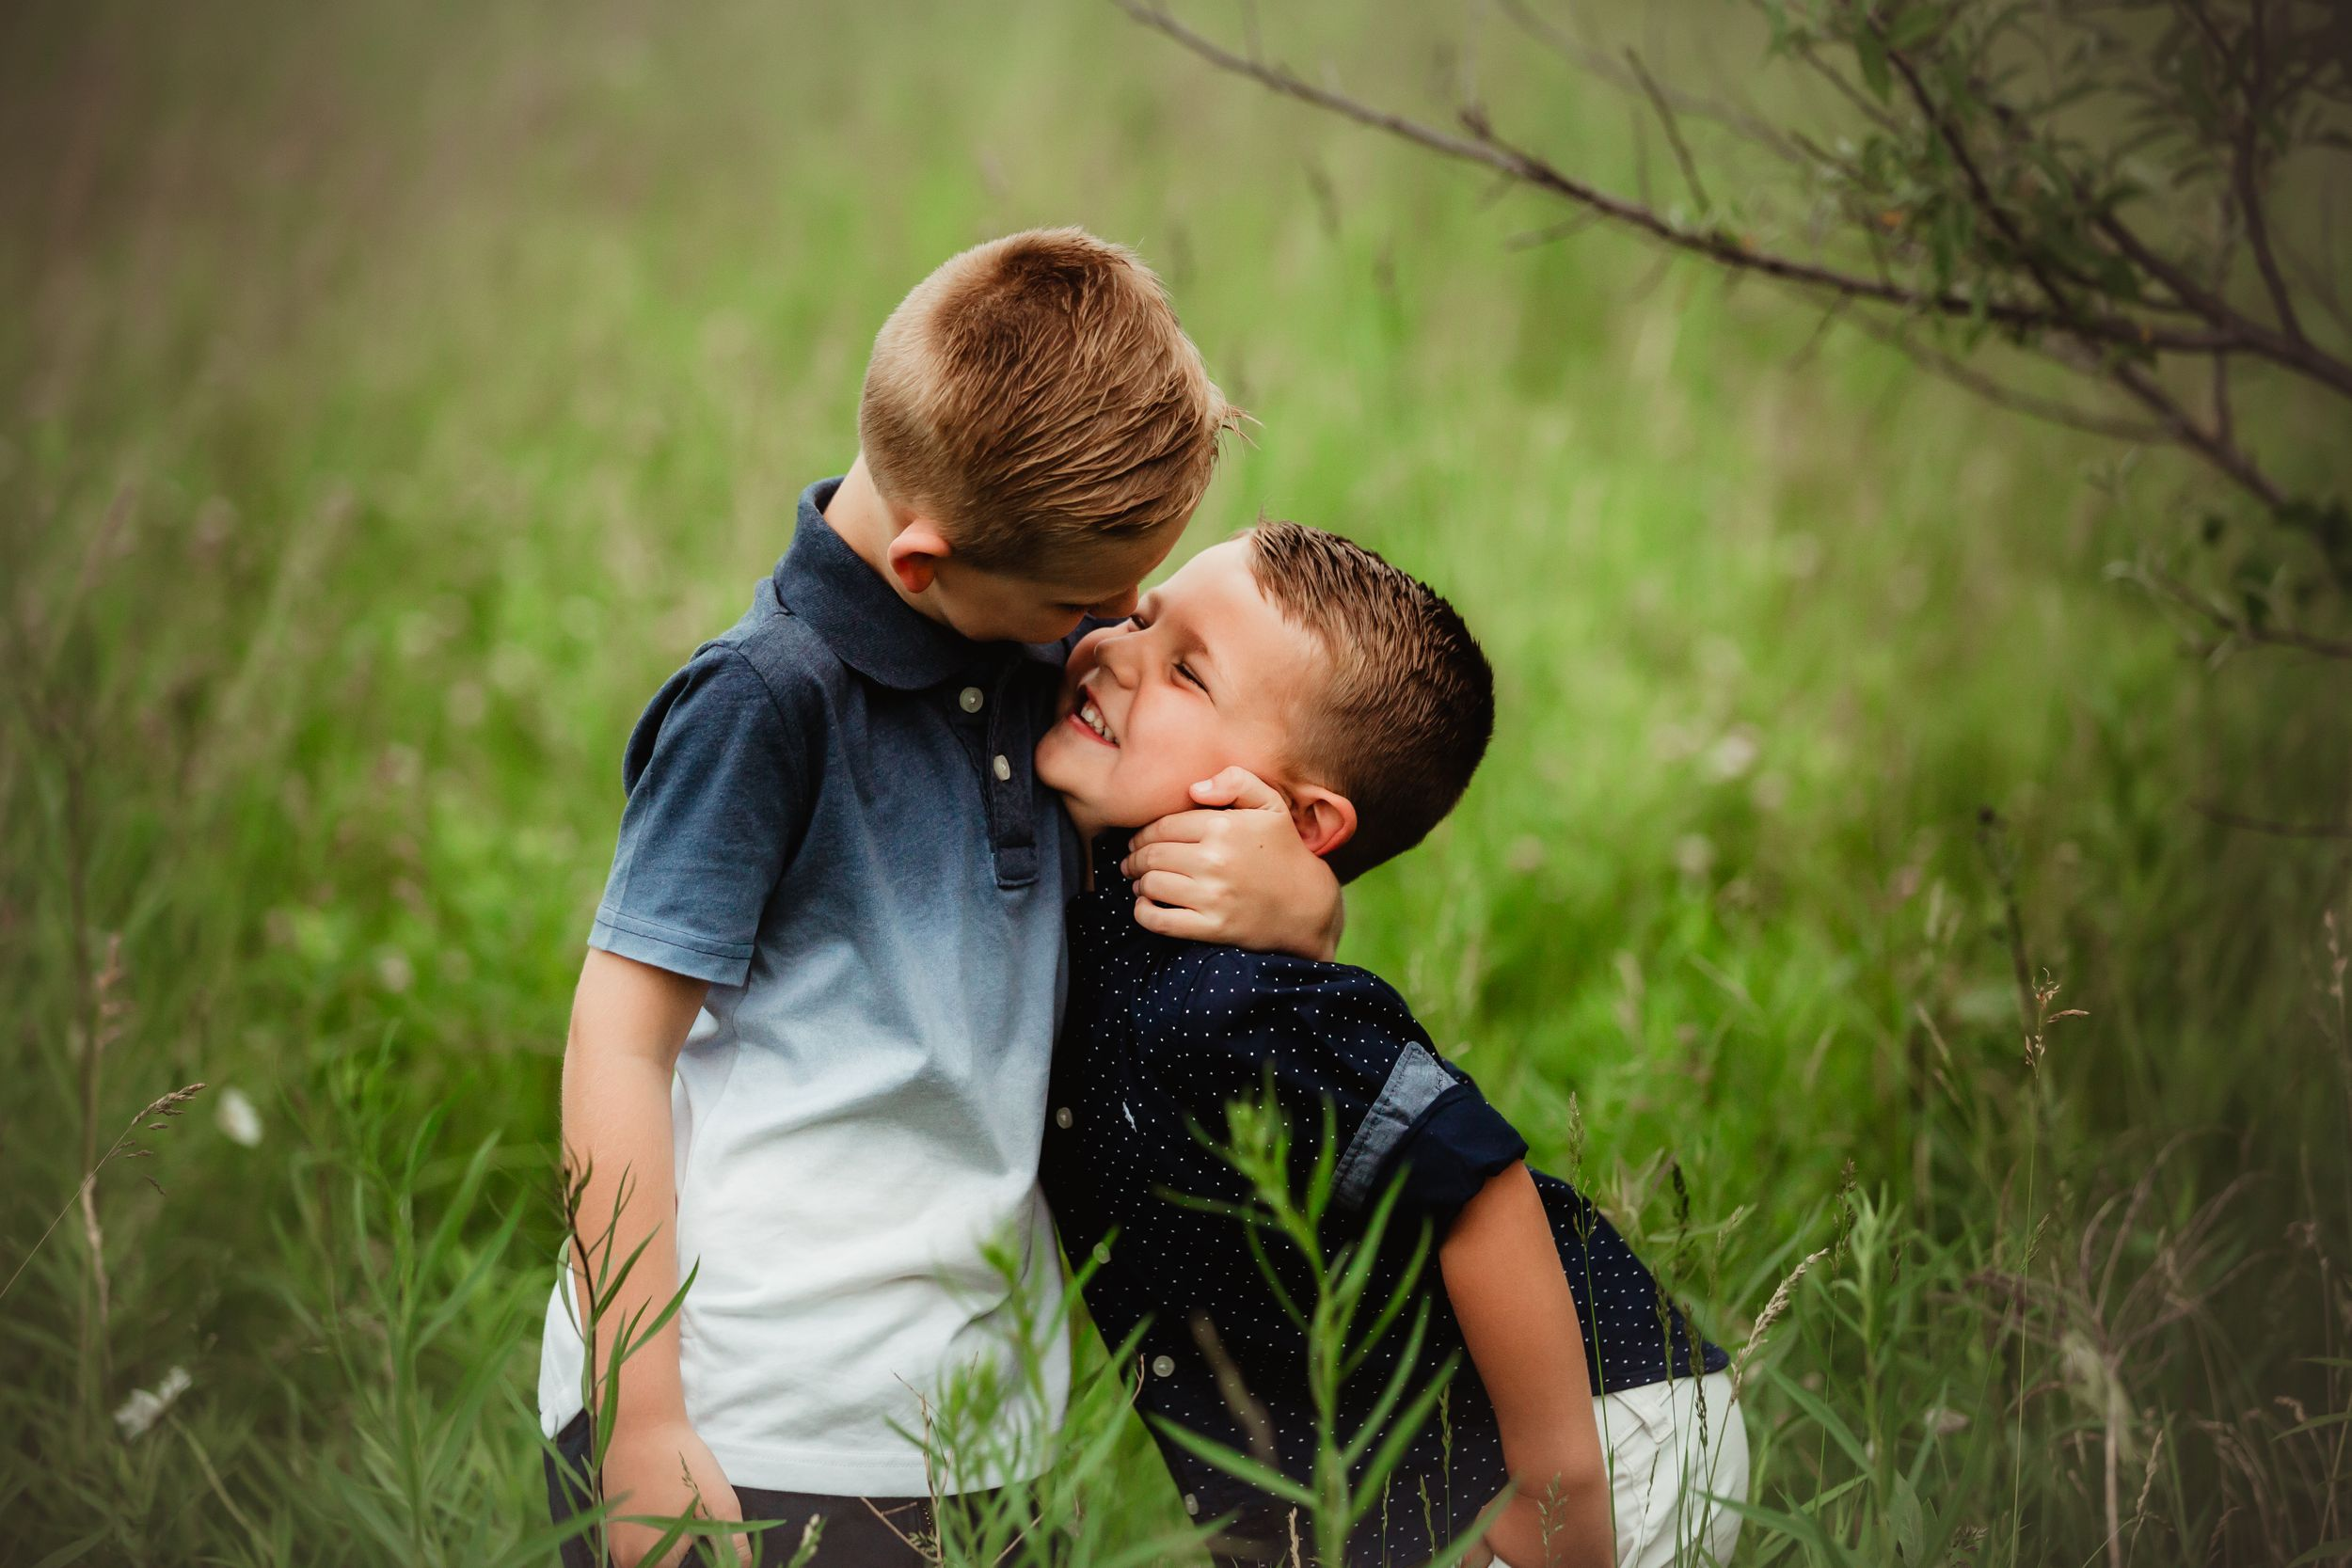 Photo of two young brothers smiling at each other and embracing.